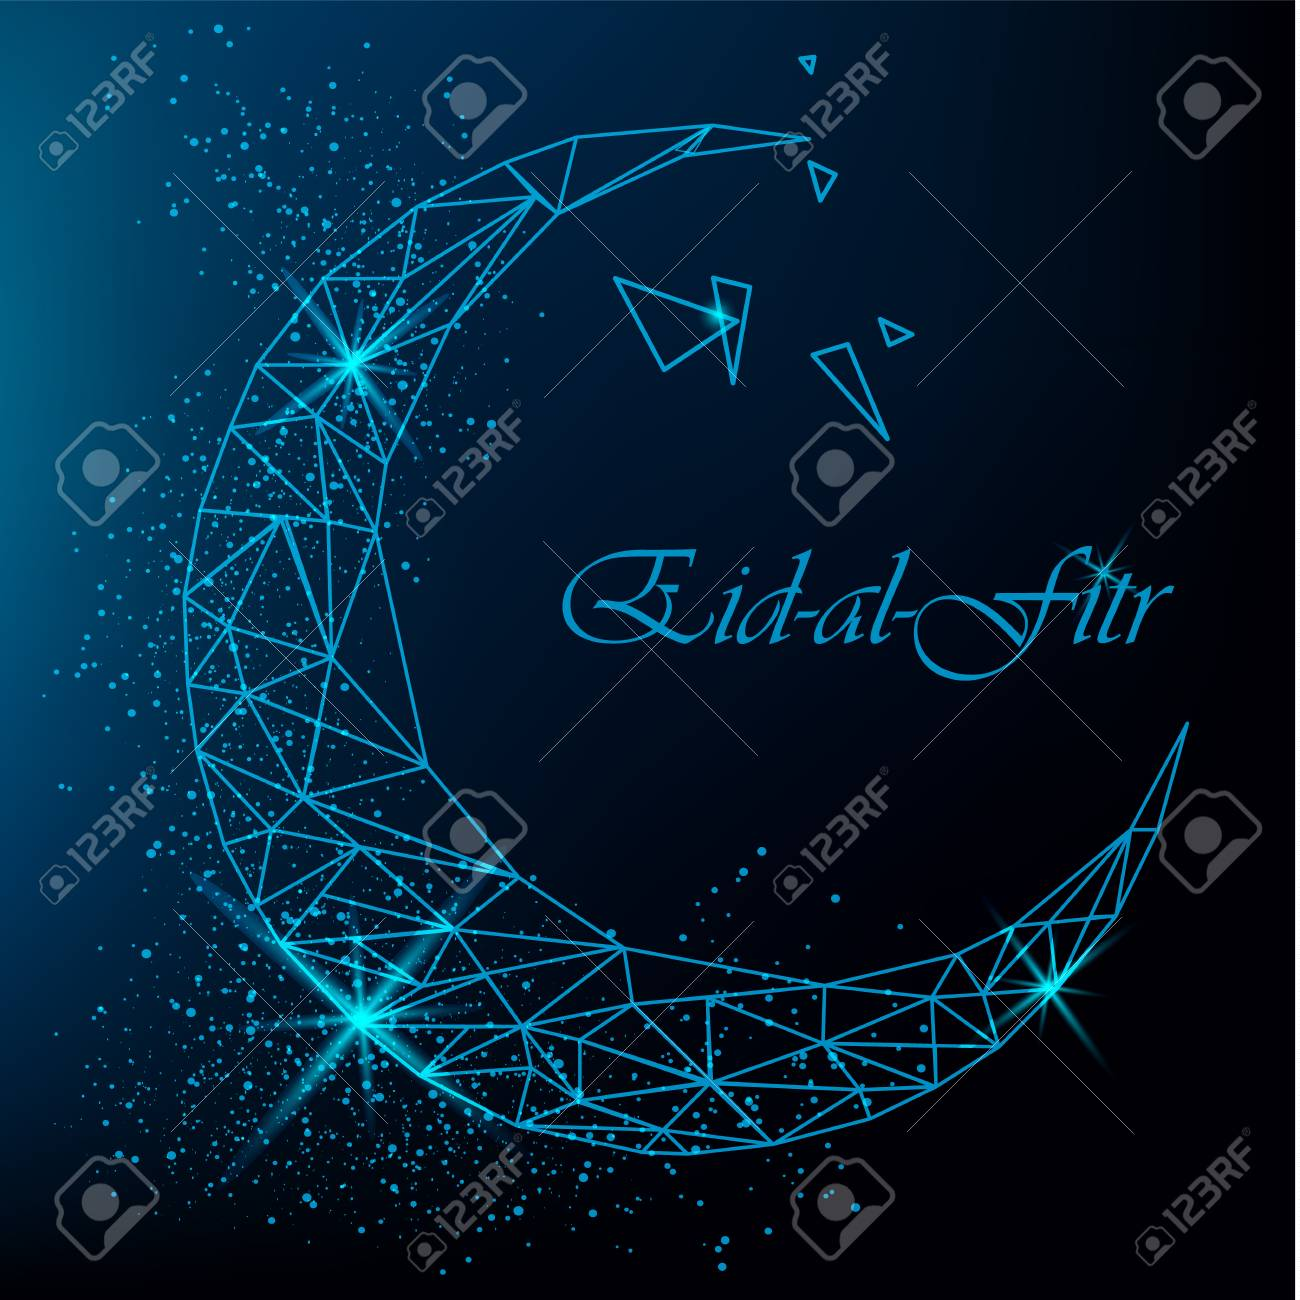 Popular Exclusive Eid Al-Fitr Greeting - 79996470-eid-al-fitr-beautiful-greeting-card-with-polygonal-moon-with-glitter-on-blue-background-stock-vector  Image_766535 .jpg